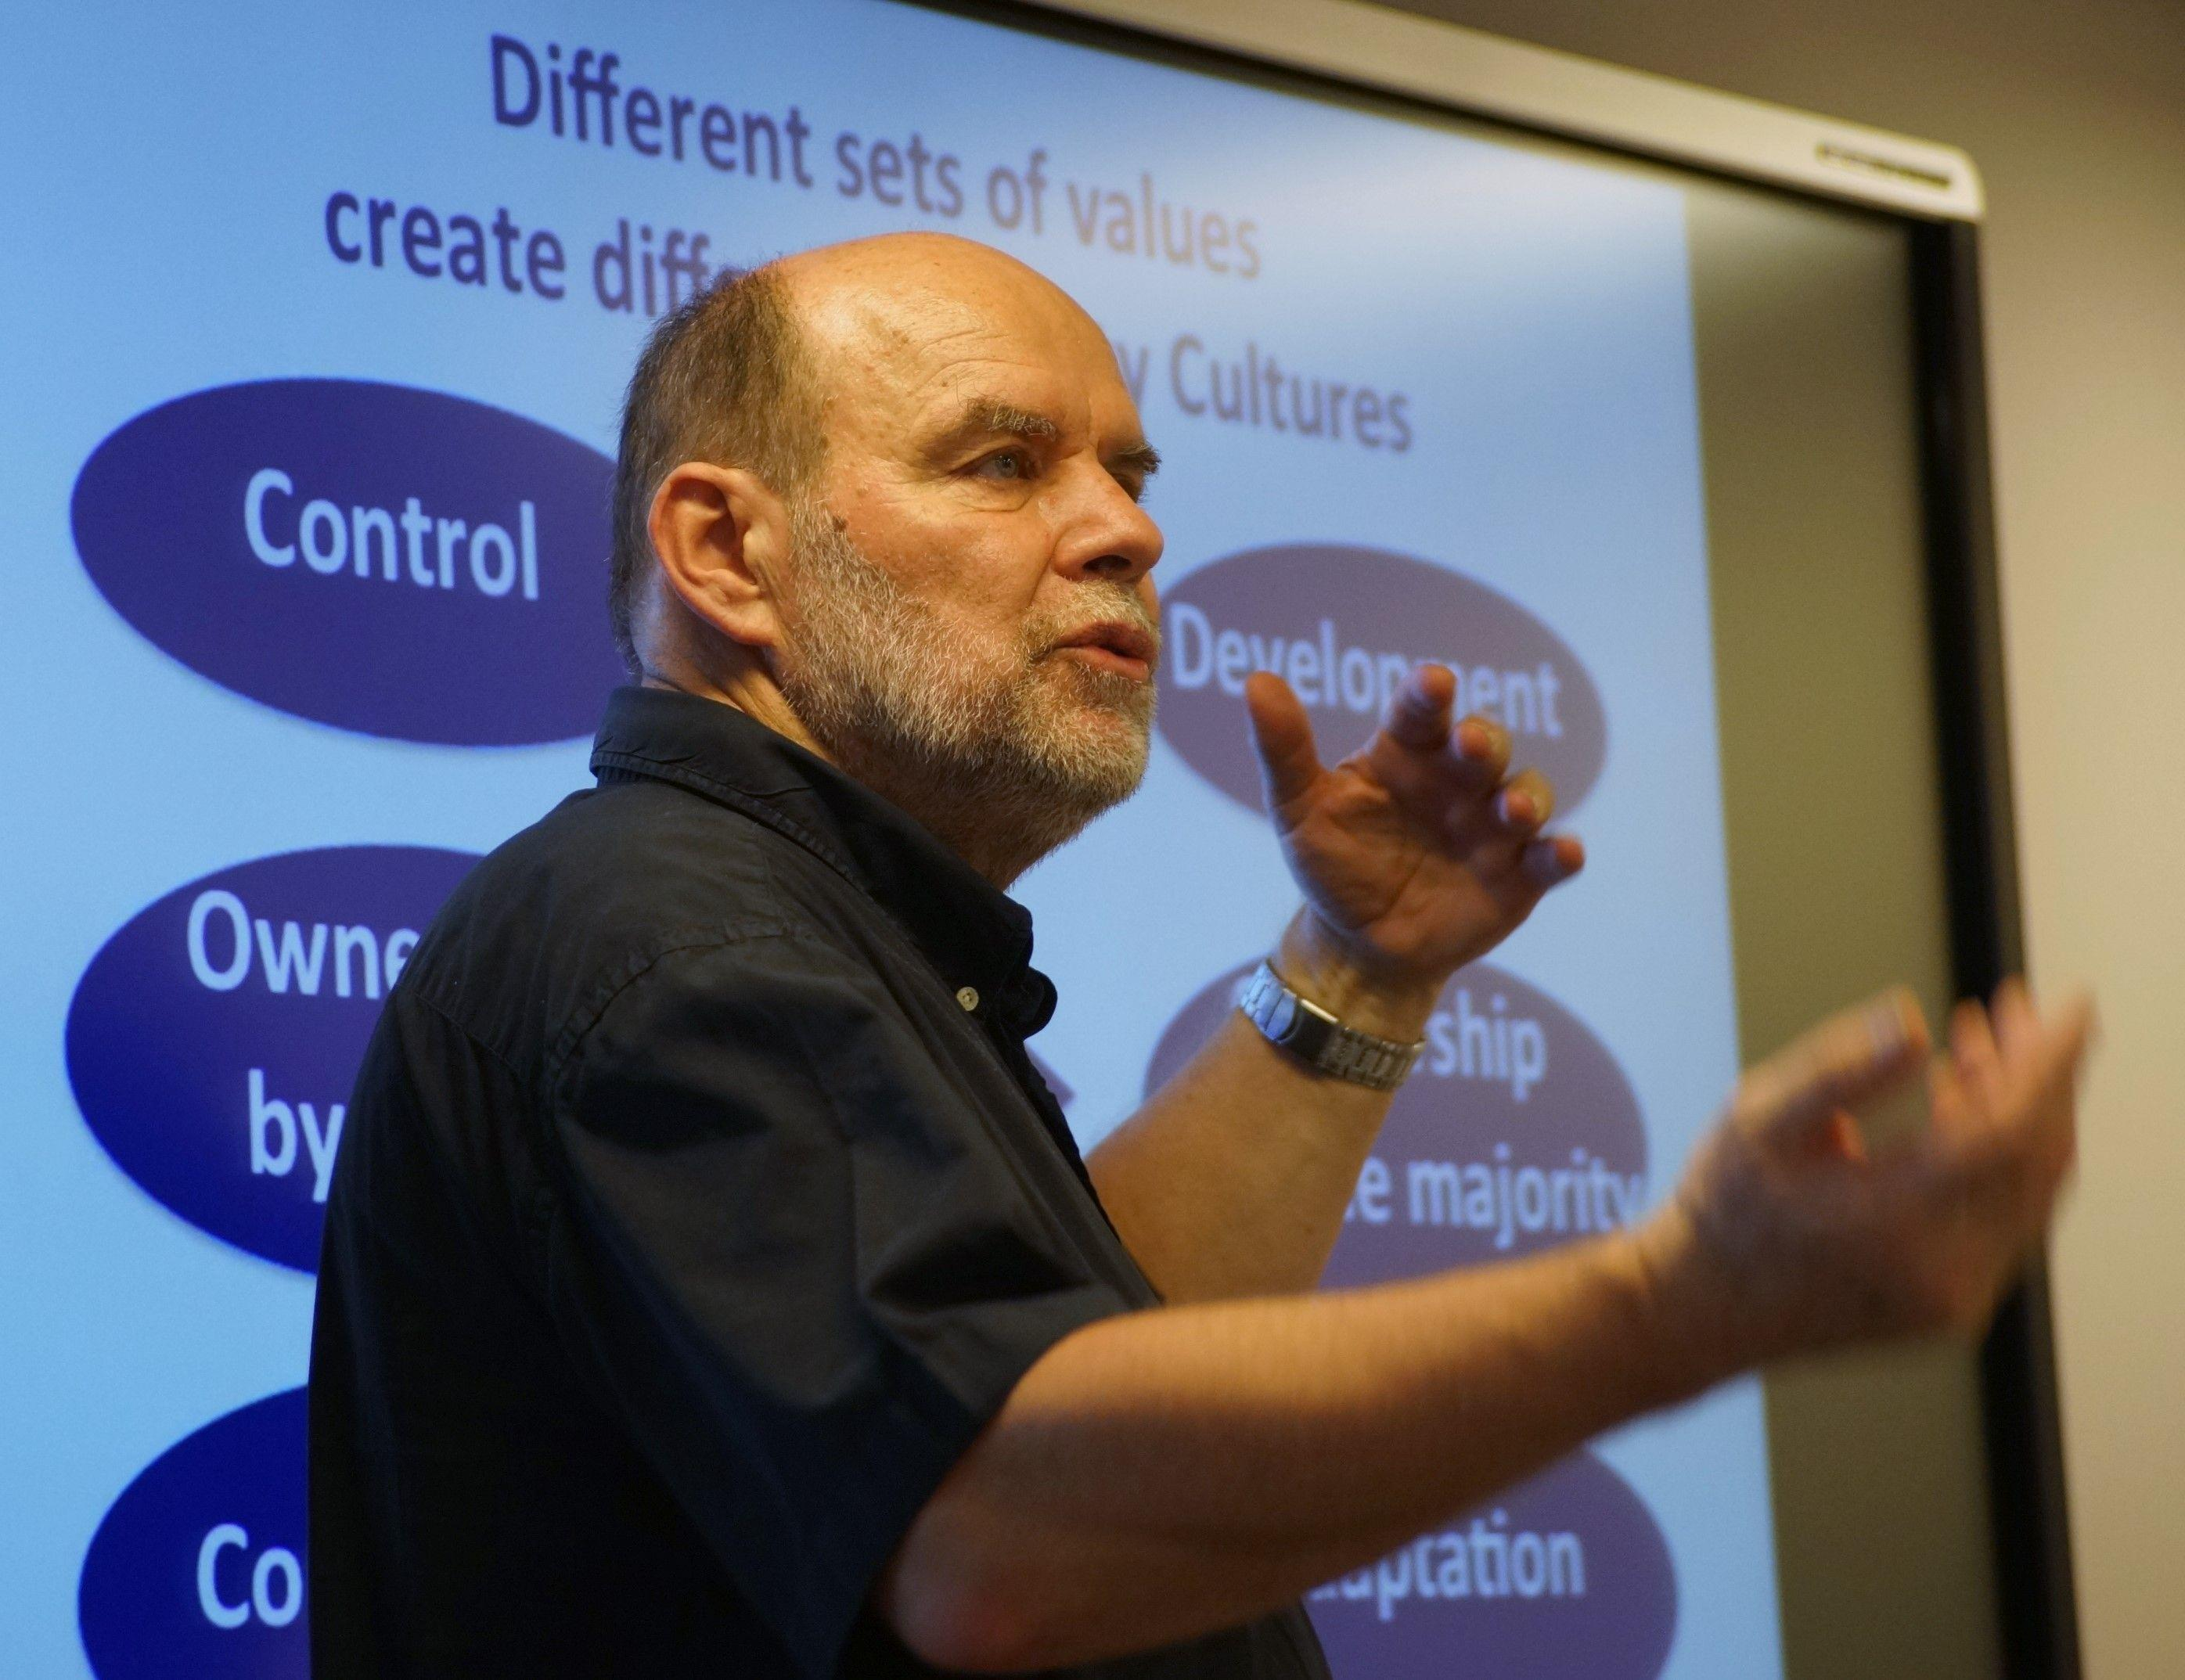 Policies and Practices in Lifelong Learning at Universities - Jacques Lanares' presentation. Image credit: Matyas Szabo